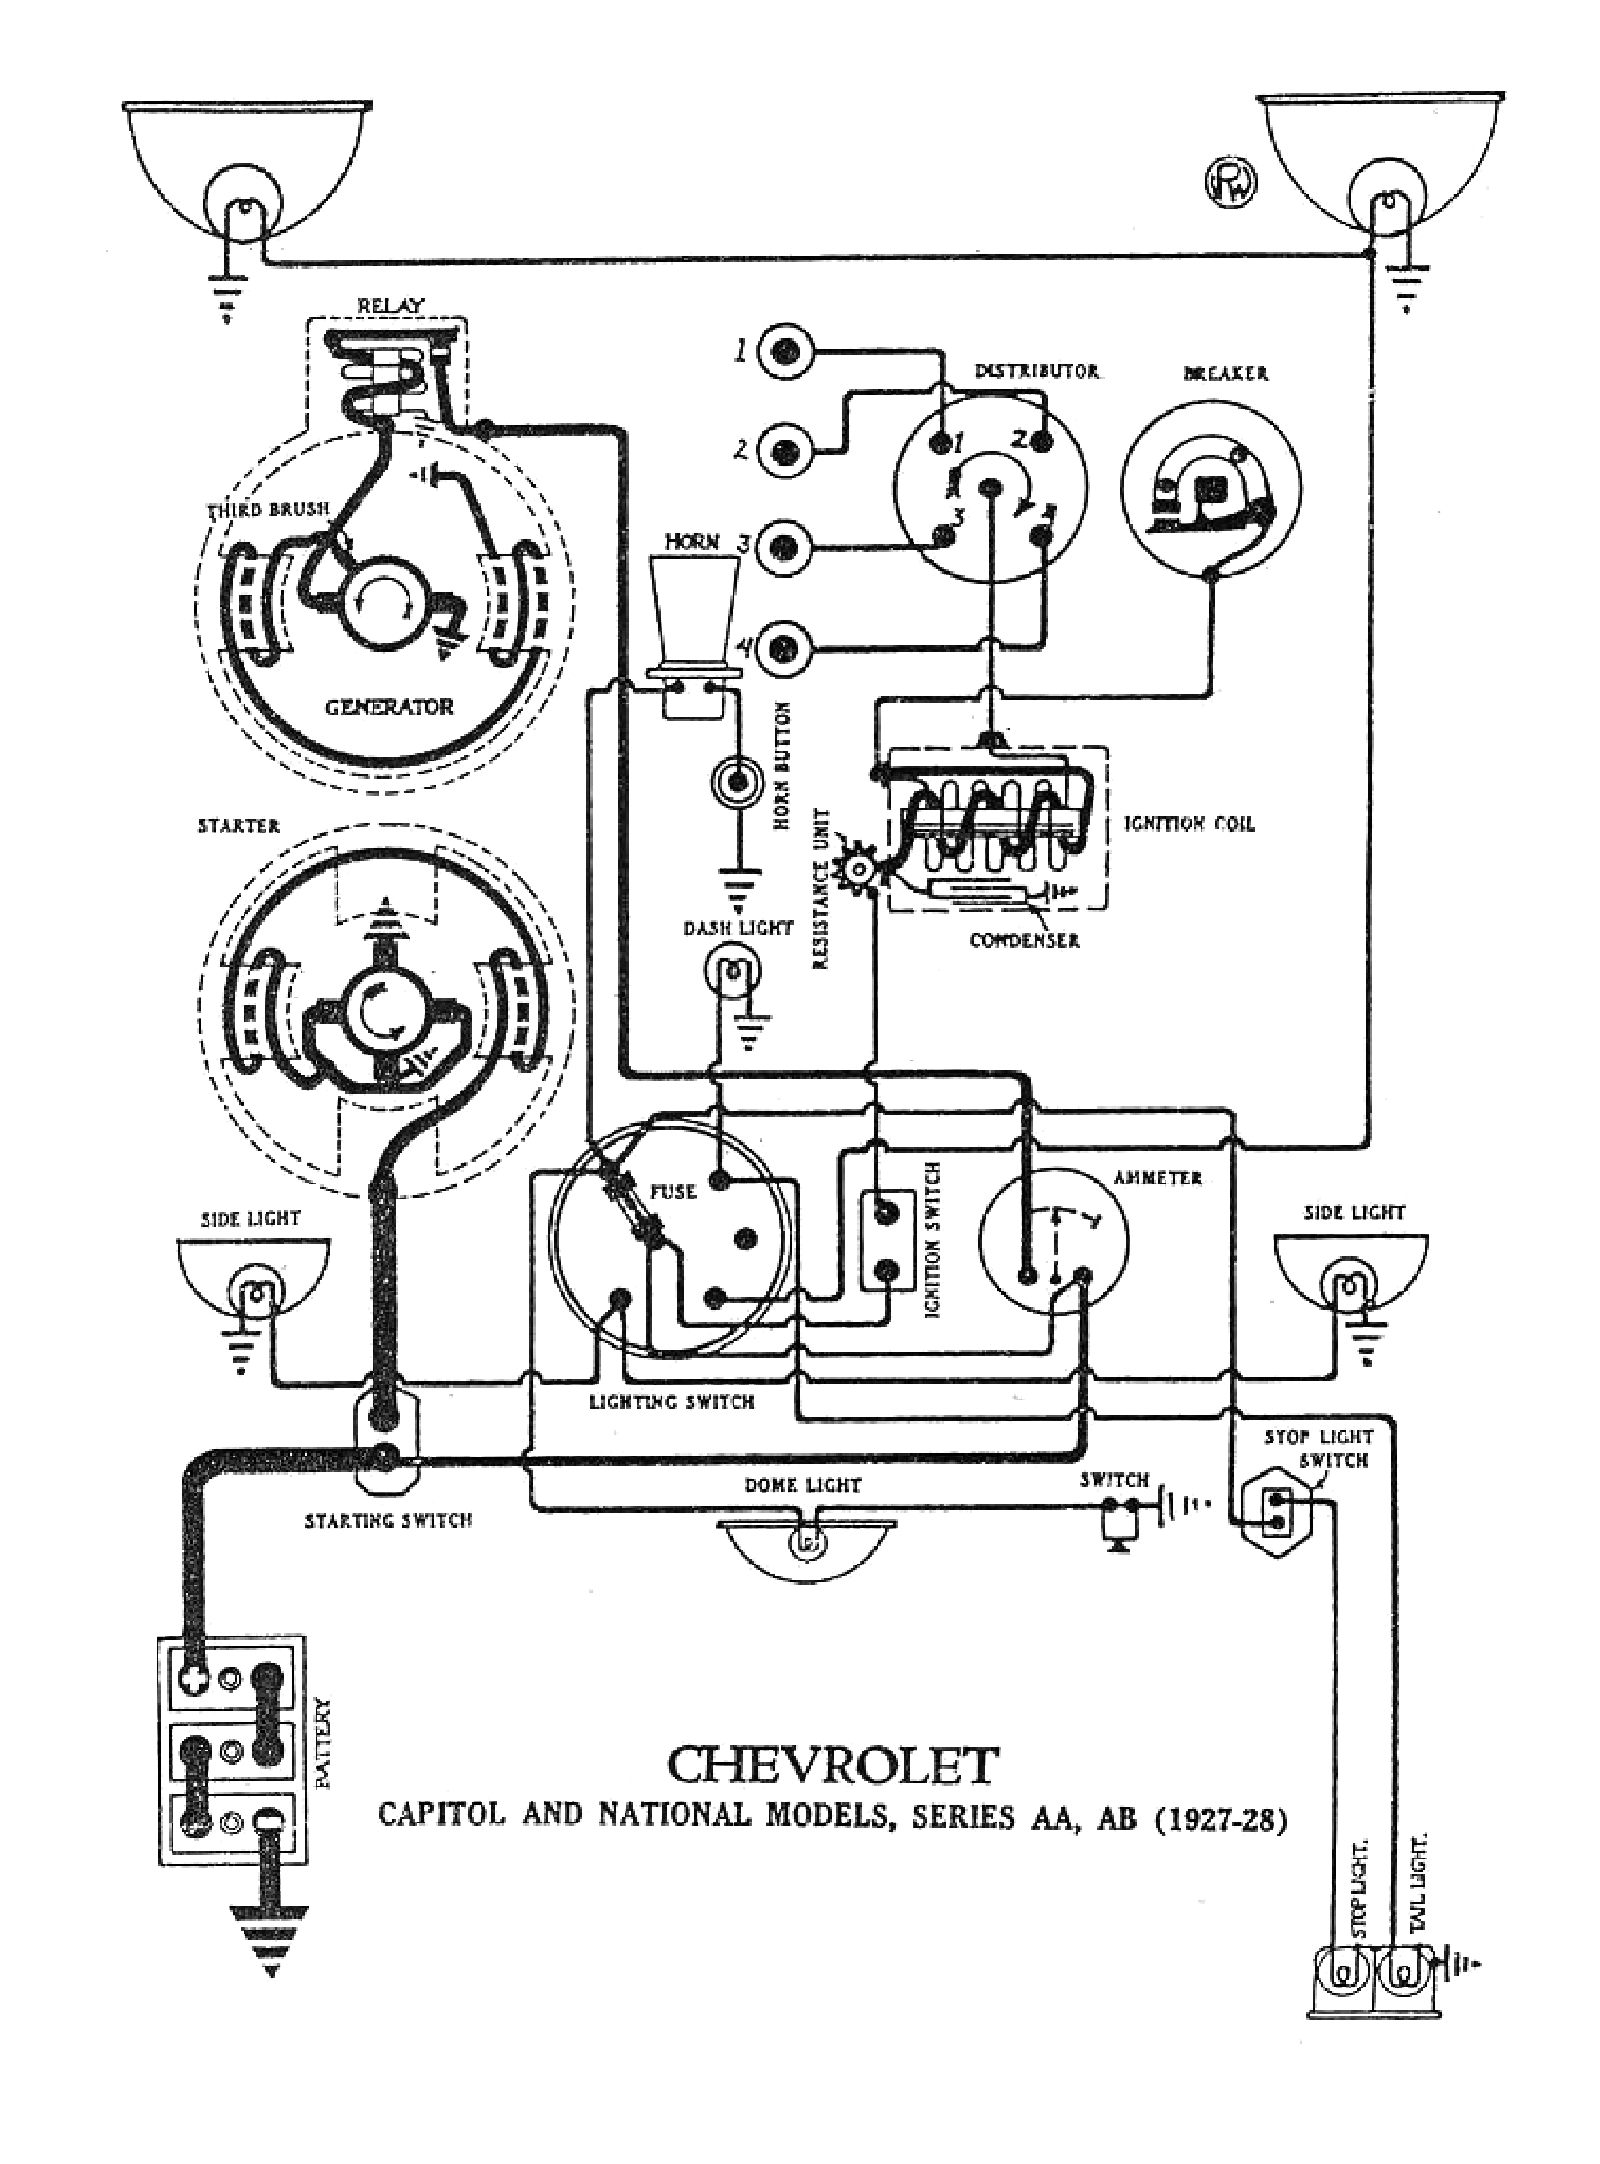 2728wiring chevy wiring diagrams chevy ignition coil wiring diagram at bayanpartner.co